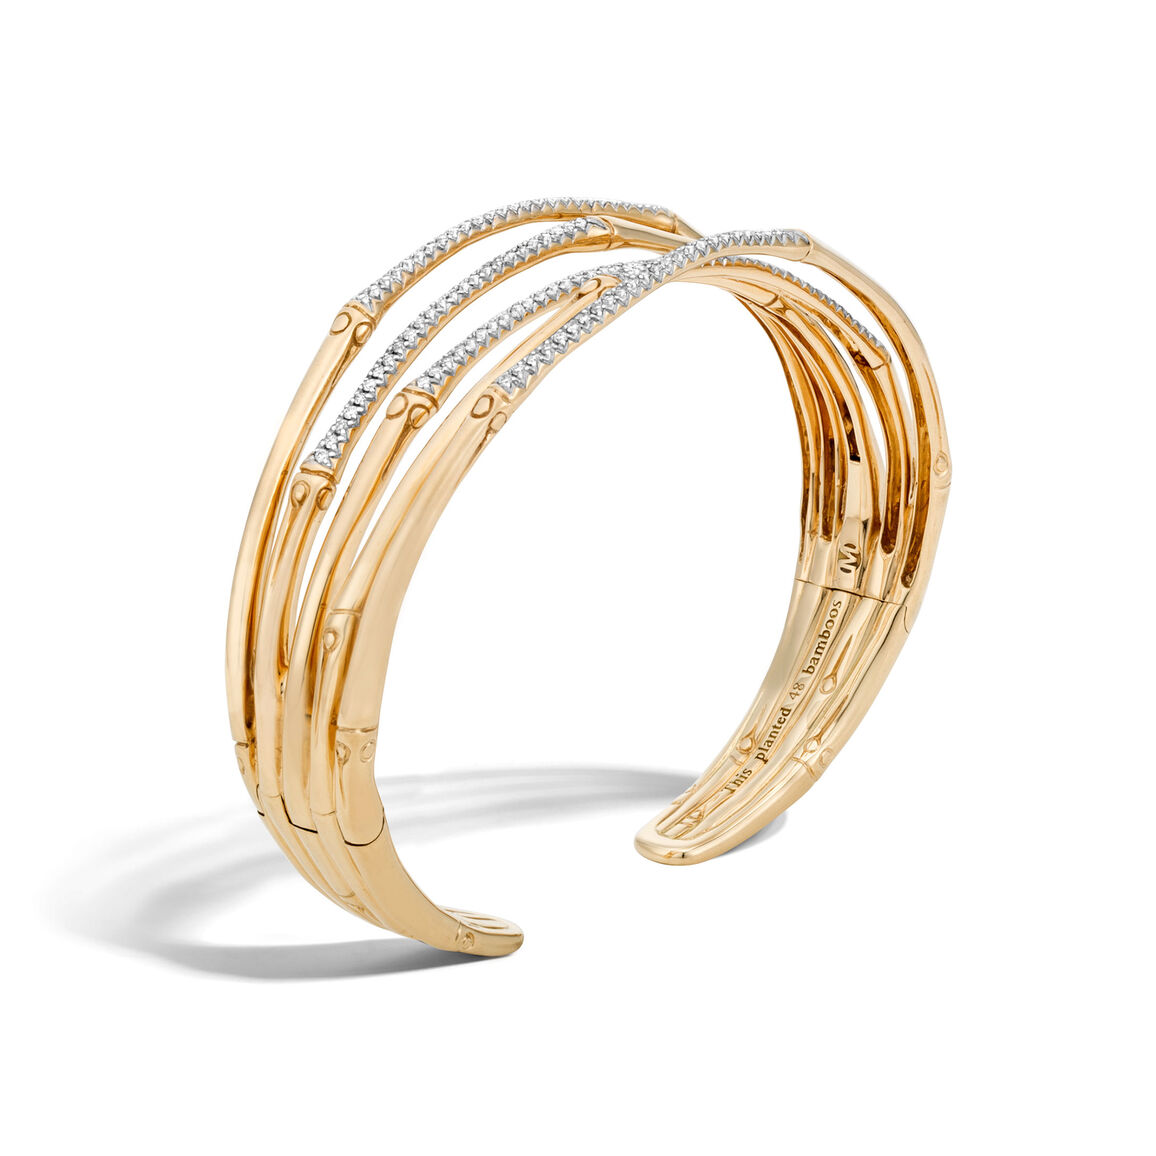 Bamboo 19MM Cuff in 18K Gold with Diamonds